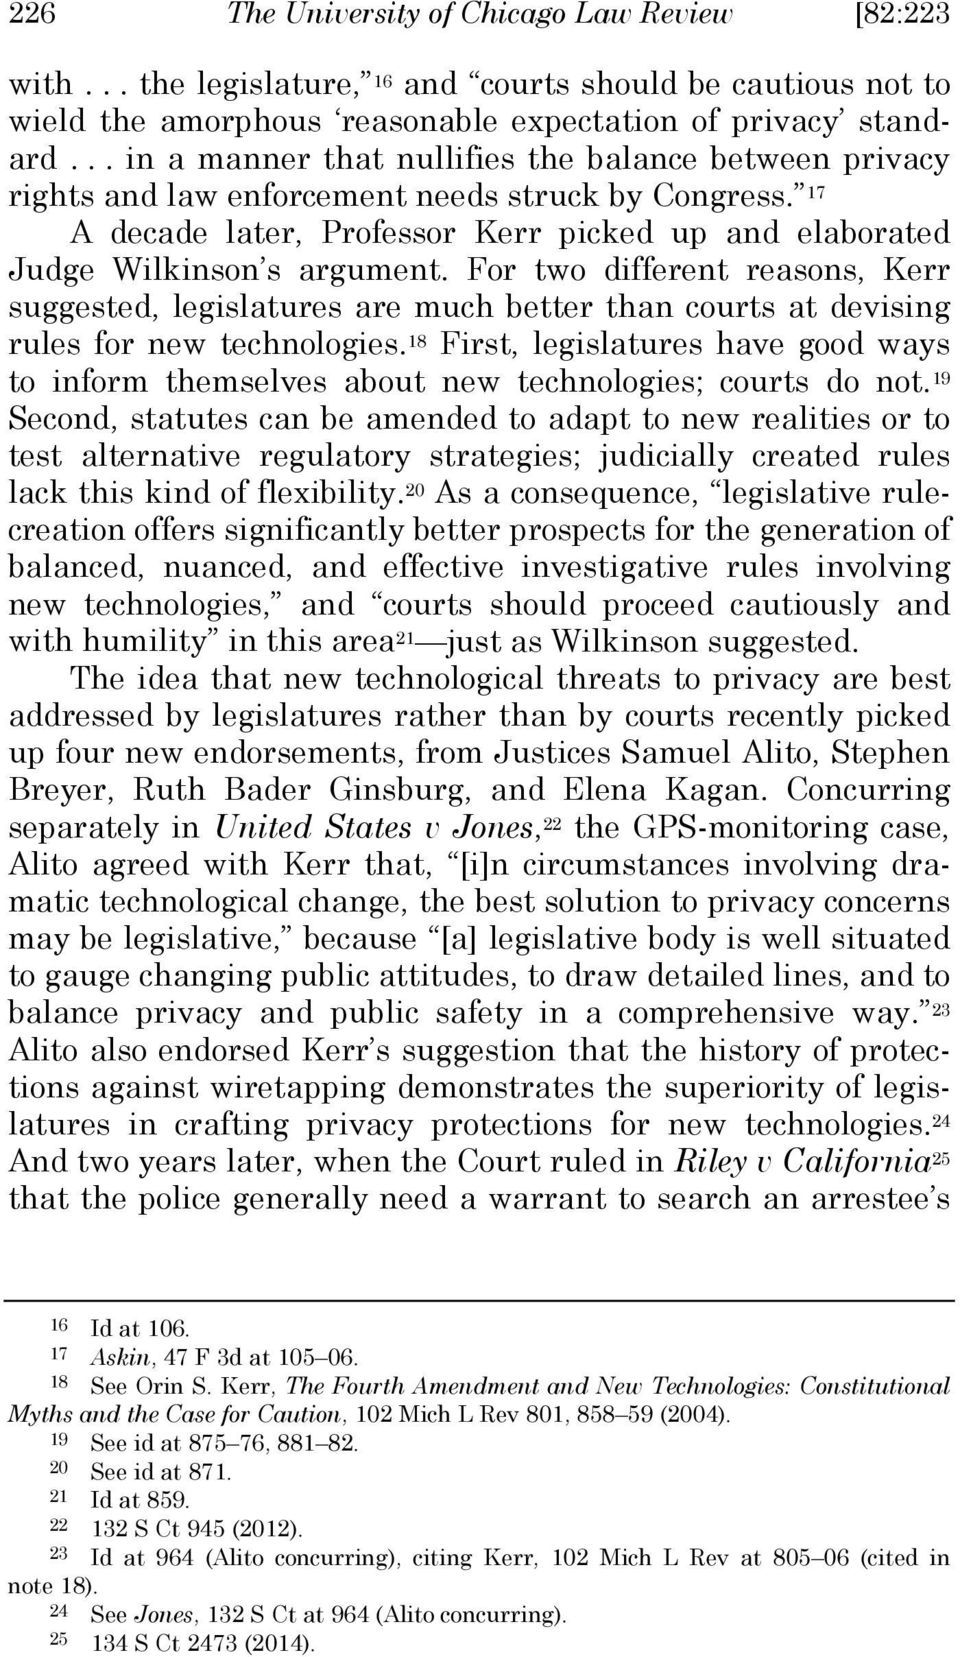 For two different reasons, Kerr suggested, legislatures are much better than courts at devising rules for new technologies.